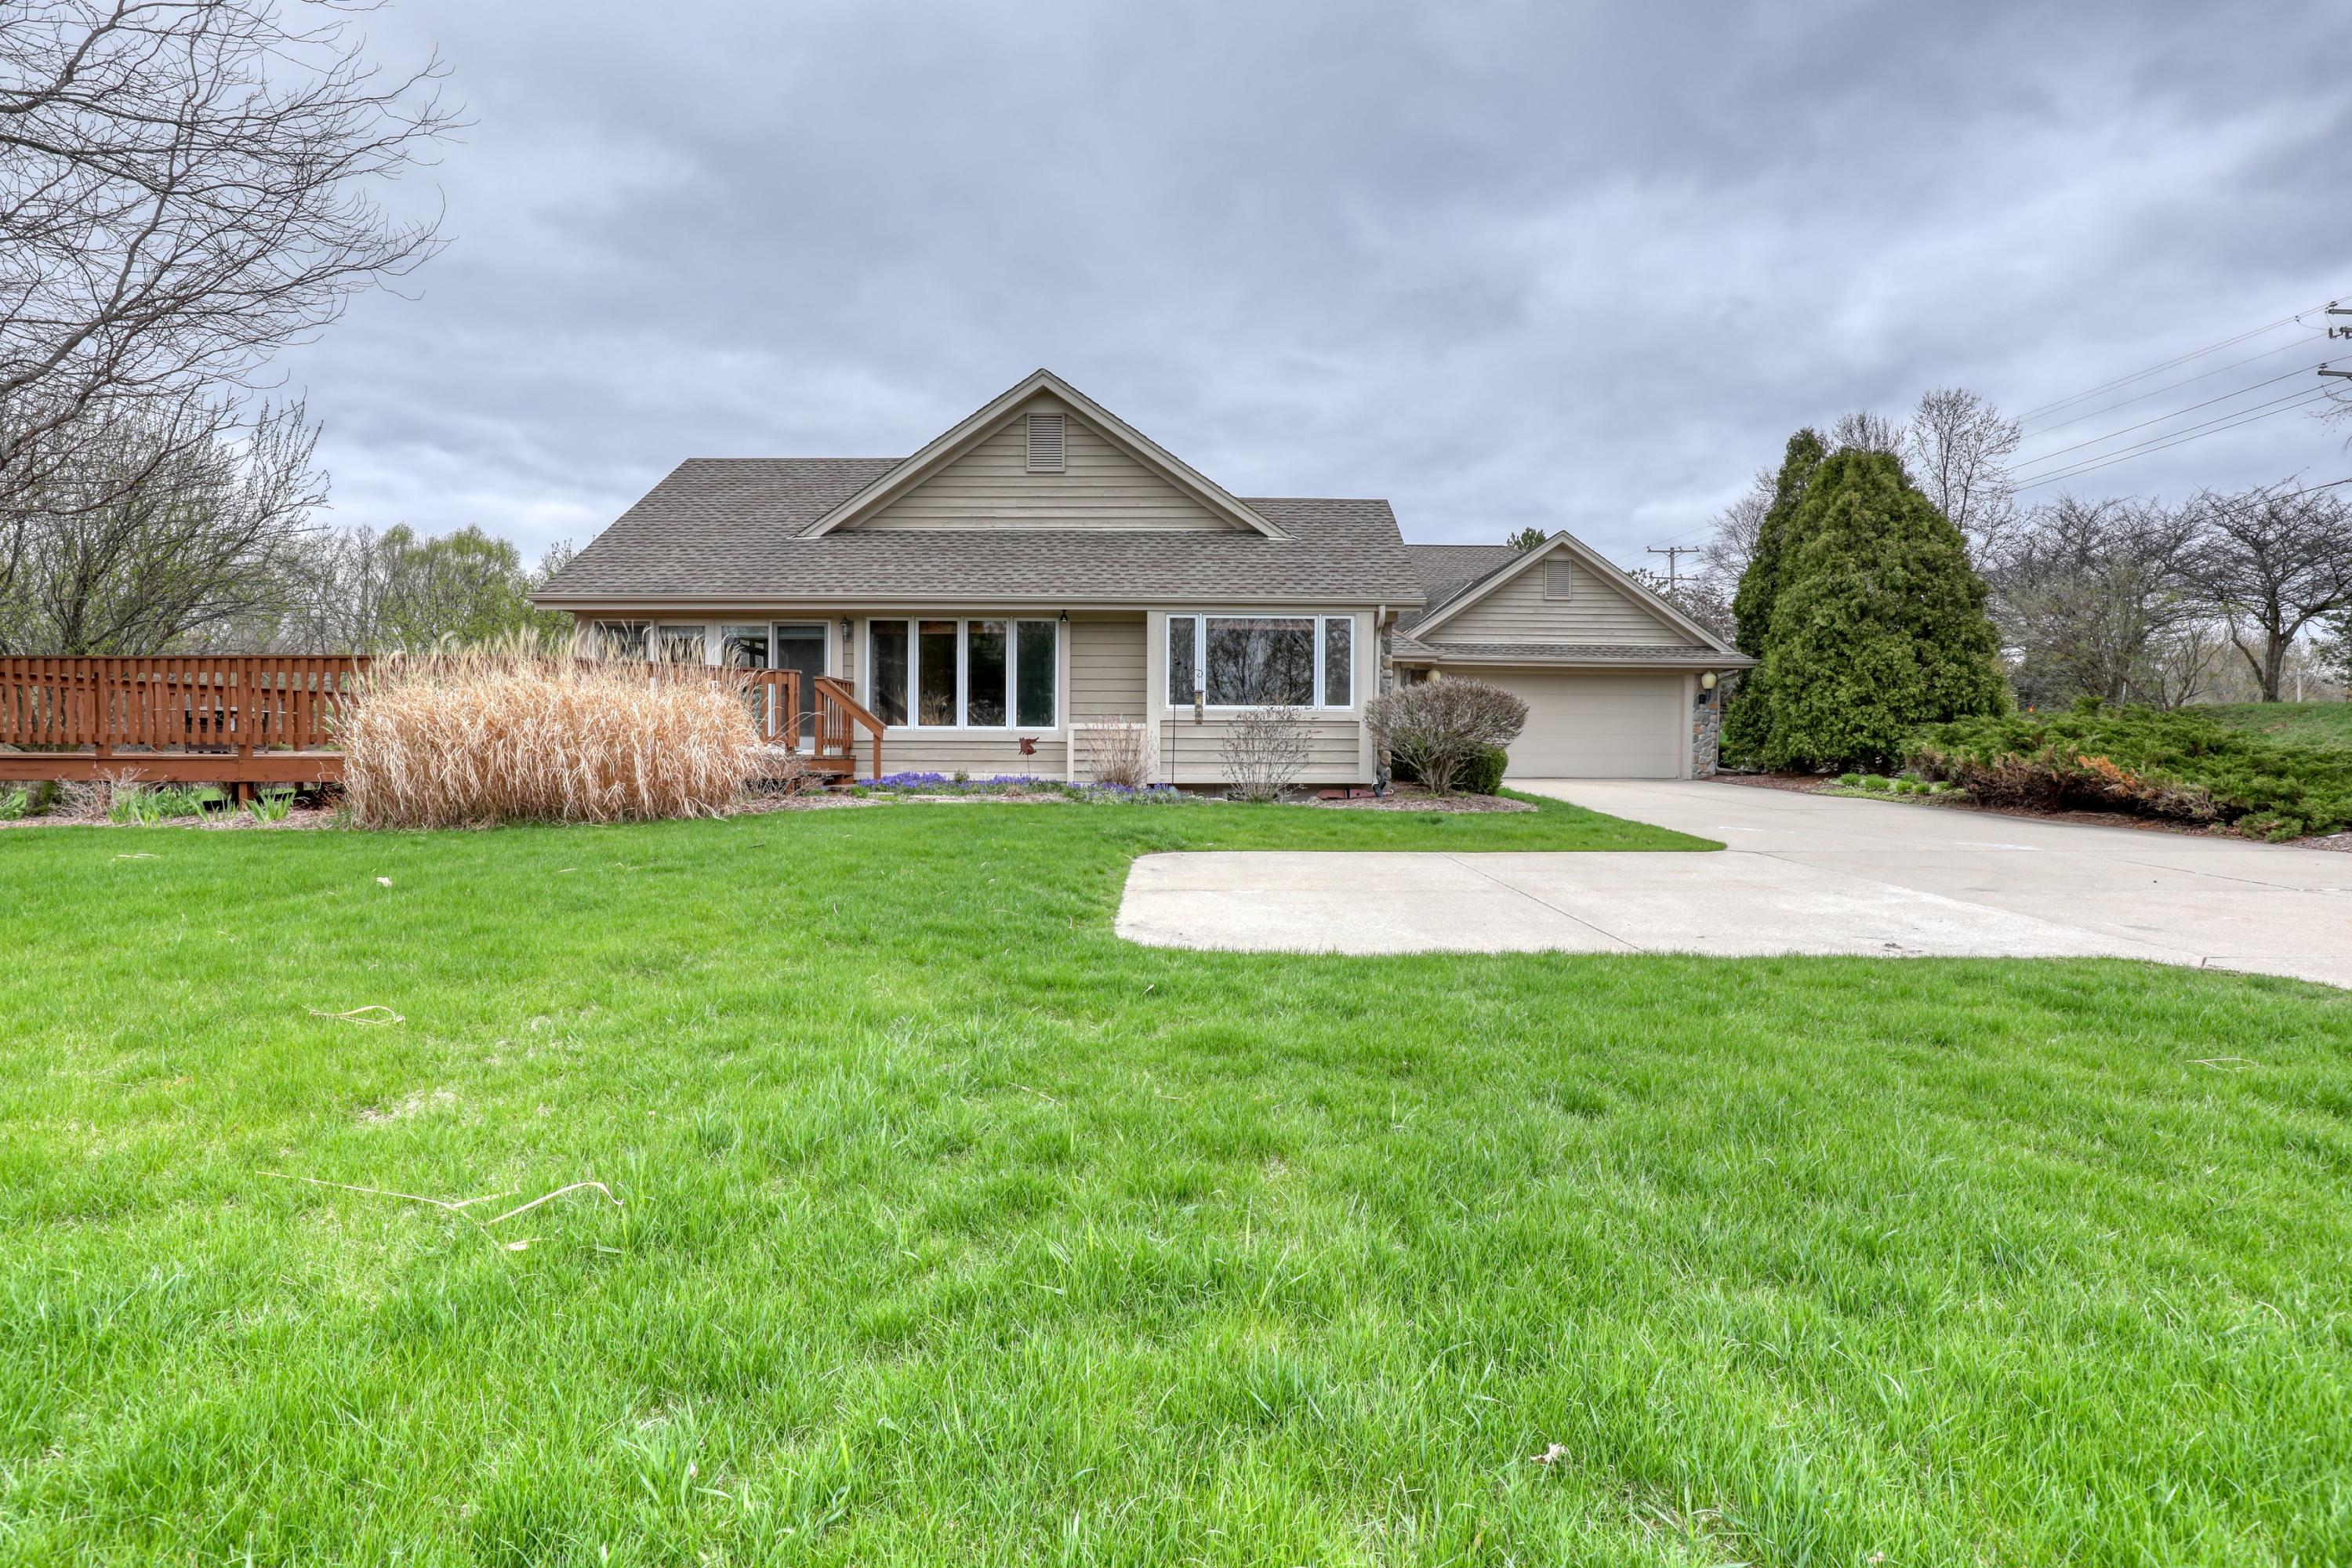 N19W22028 Fox View Ct, Pewaukee, Wisconsin 53186, 3 Bedrooms Bedrooms, 9 Rooms Rooms,2 BathroomsBathrooms,Condominiums,For Sale,Fox View Ct,1,1735767